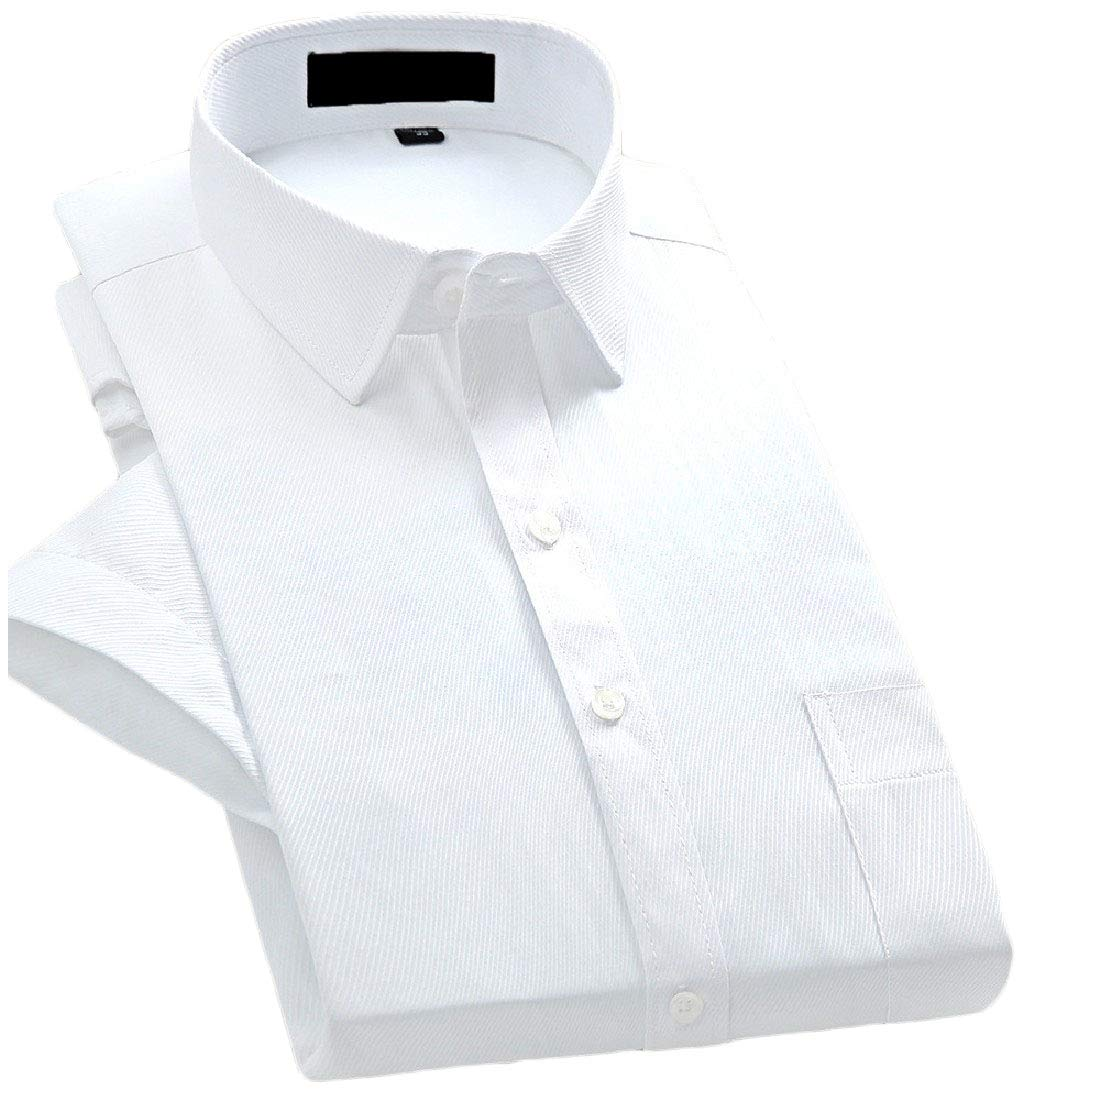 Doufine Men Solid Skinny Business Short Sleeves No Iron Plus-Size Shirt